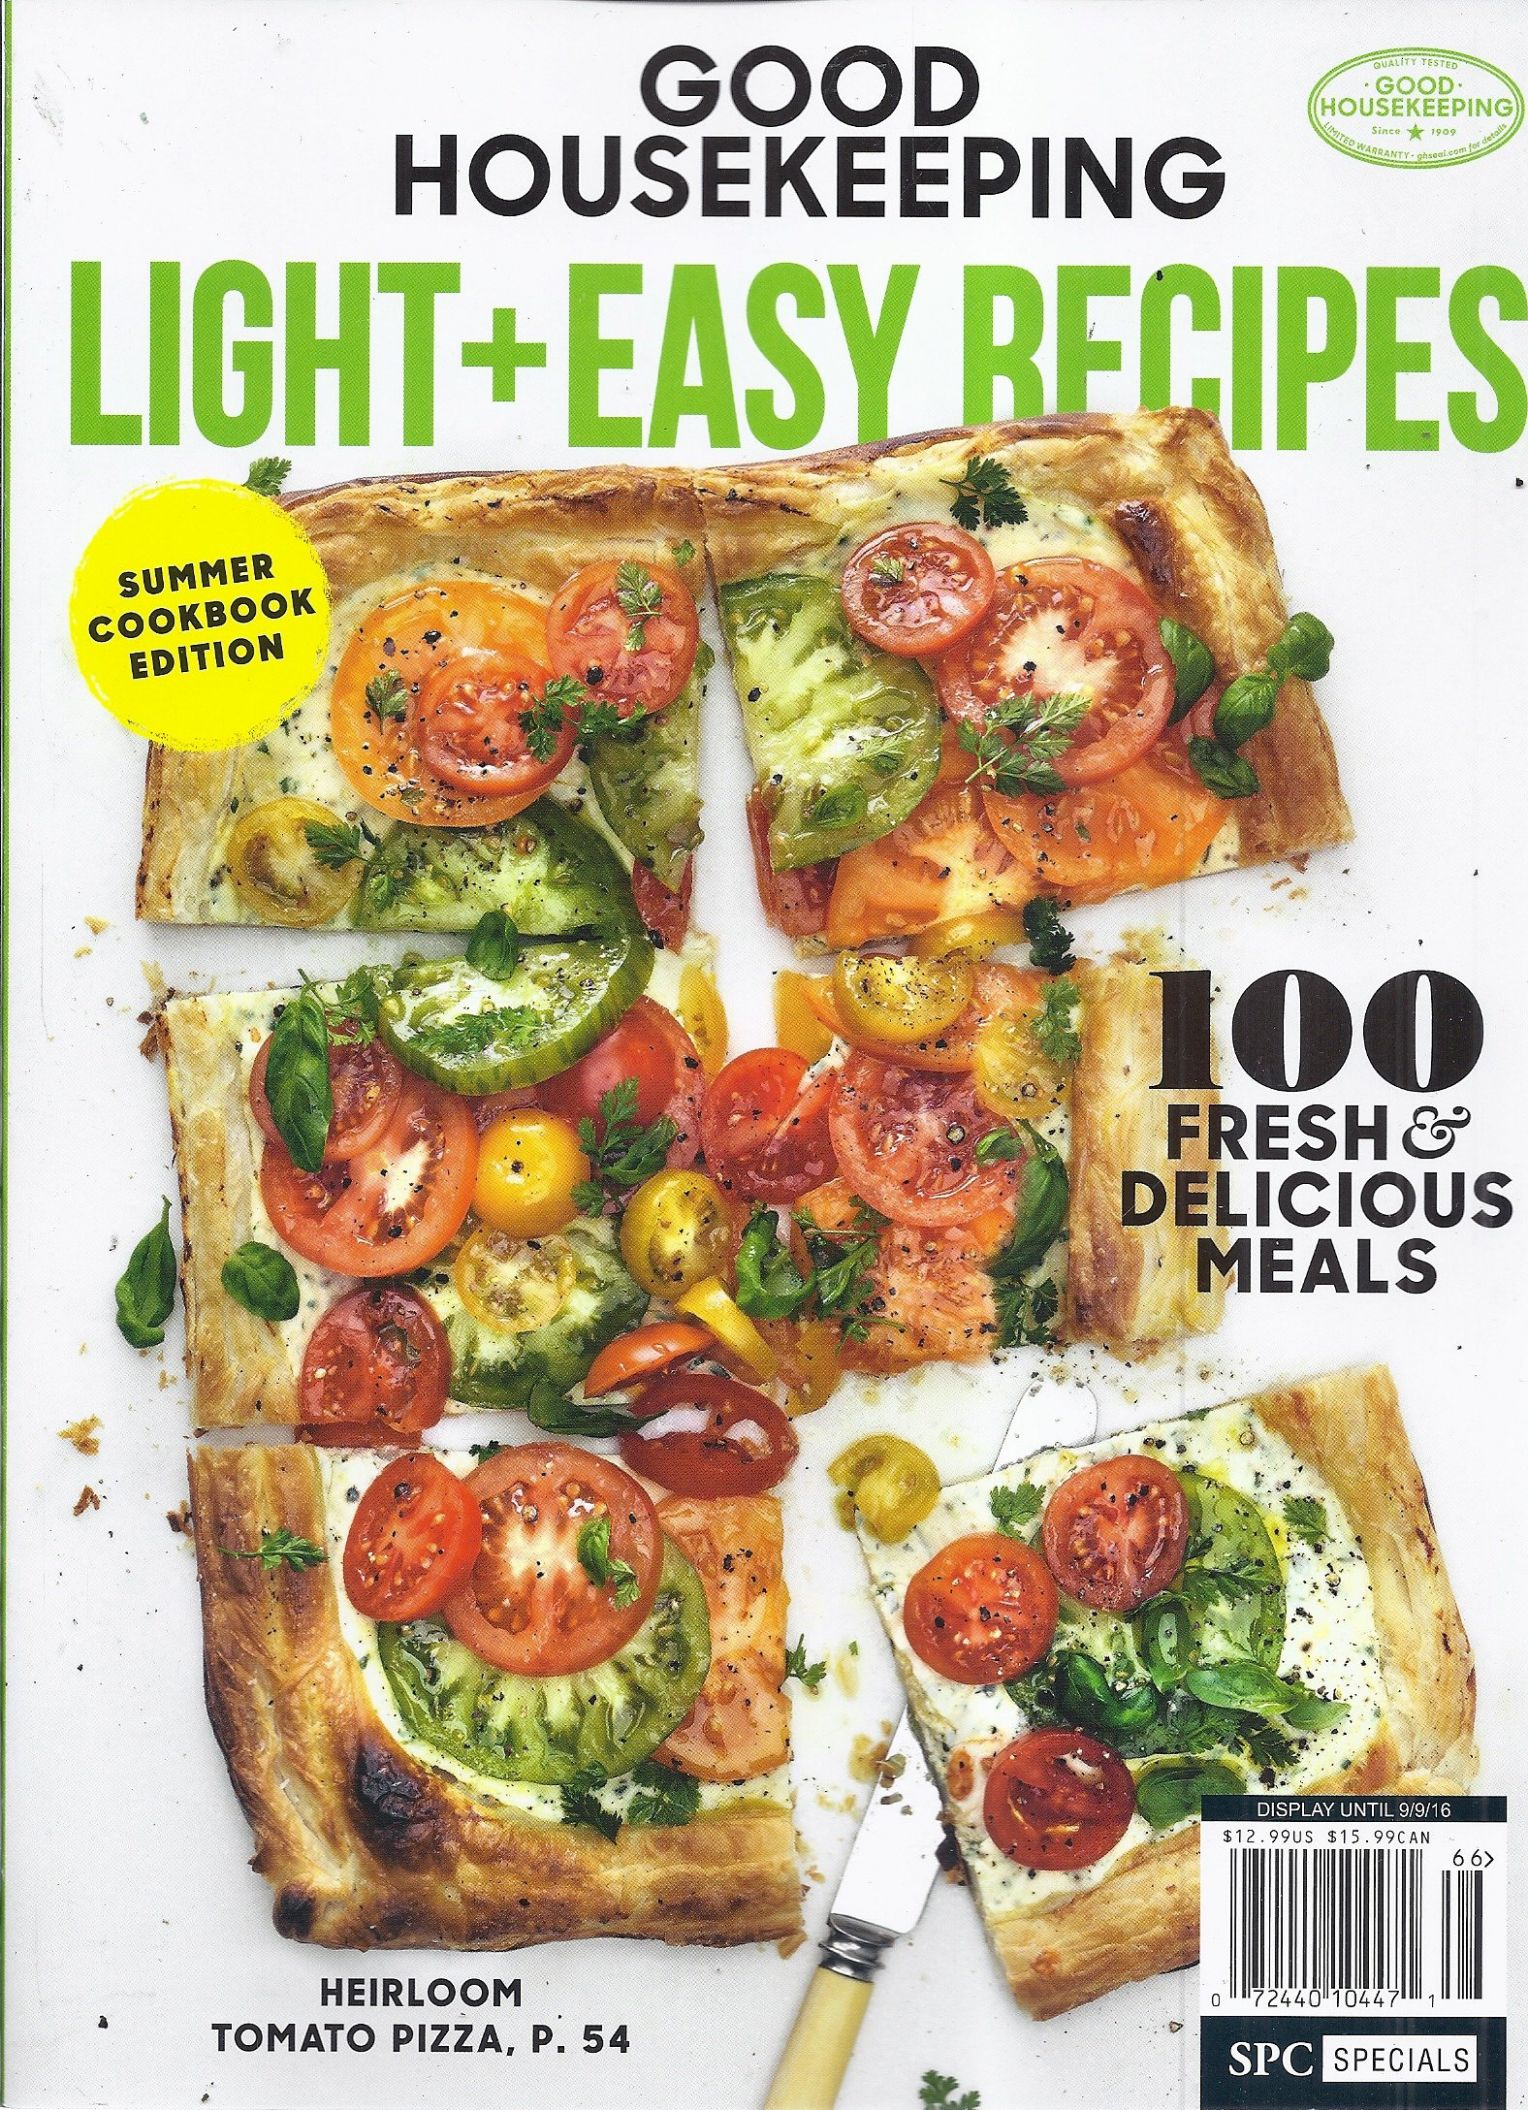 Good Housekeeping Light + Easy Recipes Magazine (Summer Cookbook ..